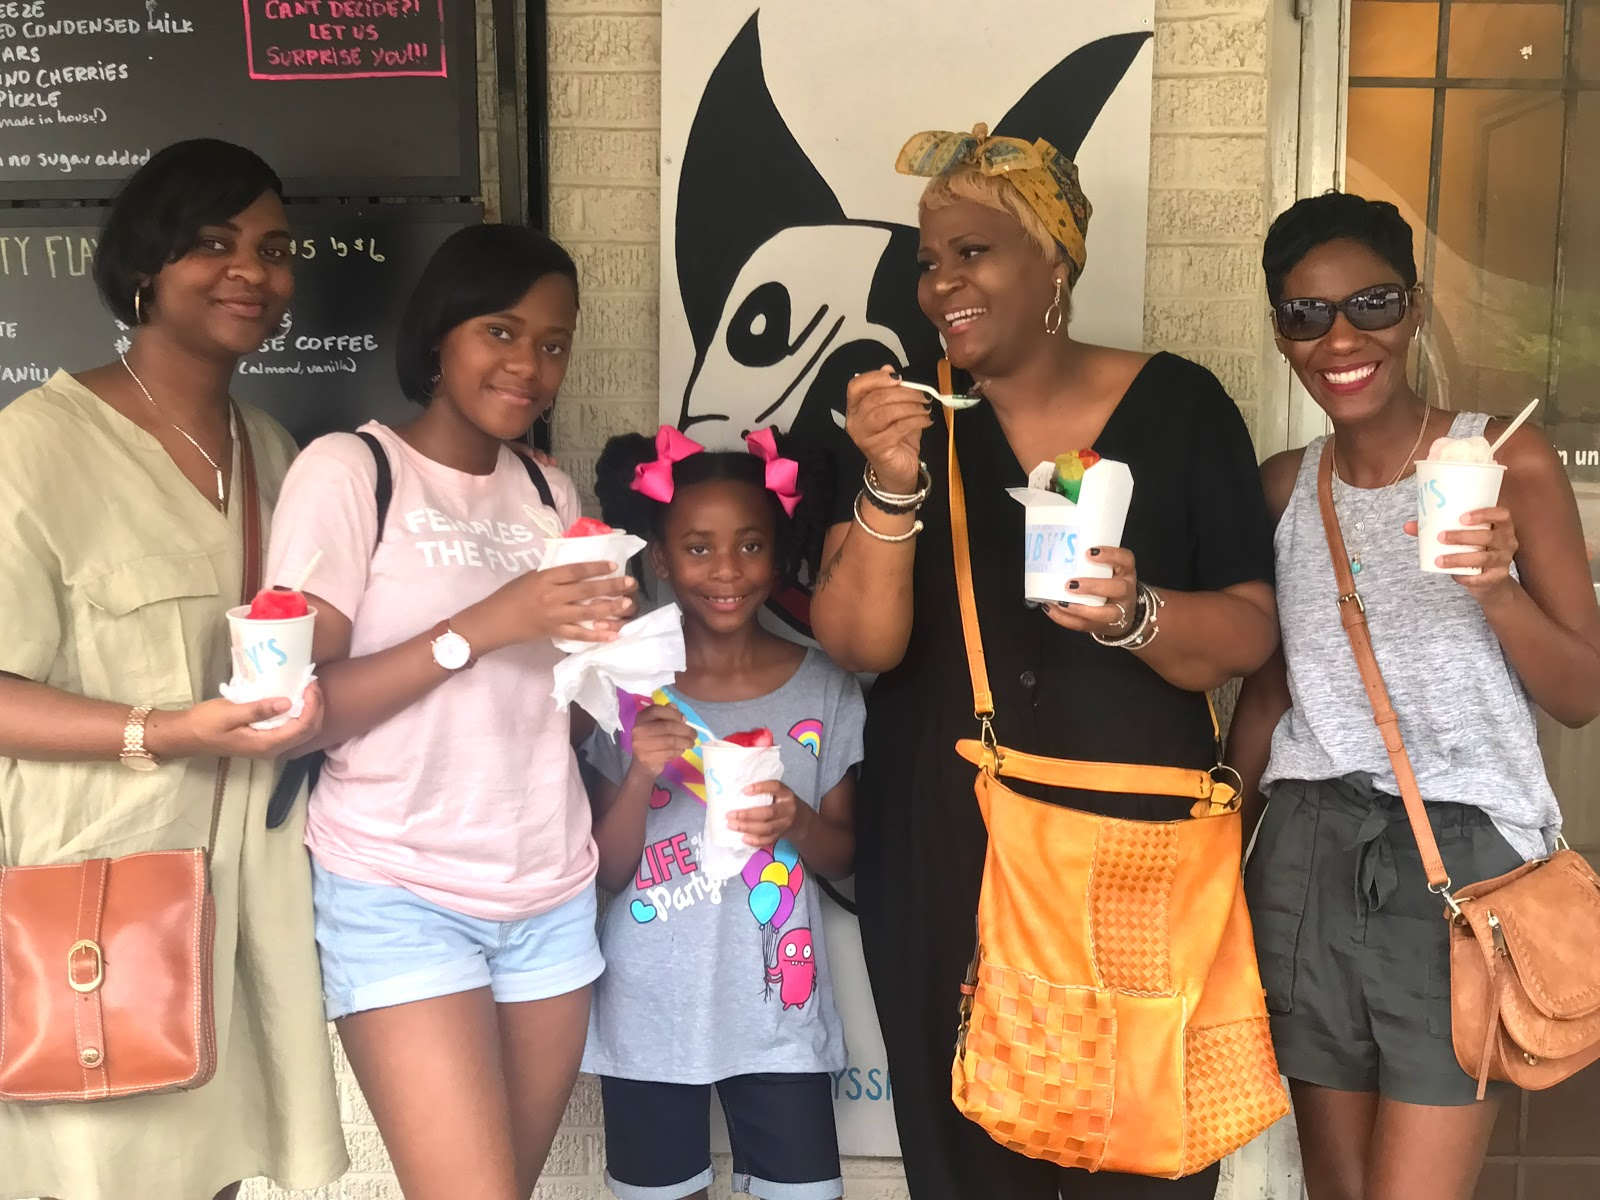 Image: Tangie Bell and Her Daughters at the snow cone place in Dallas Texas. Seen first on Bits and Babbles